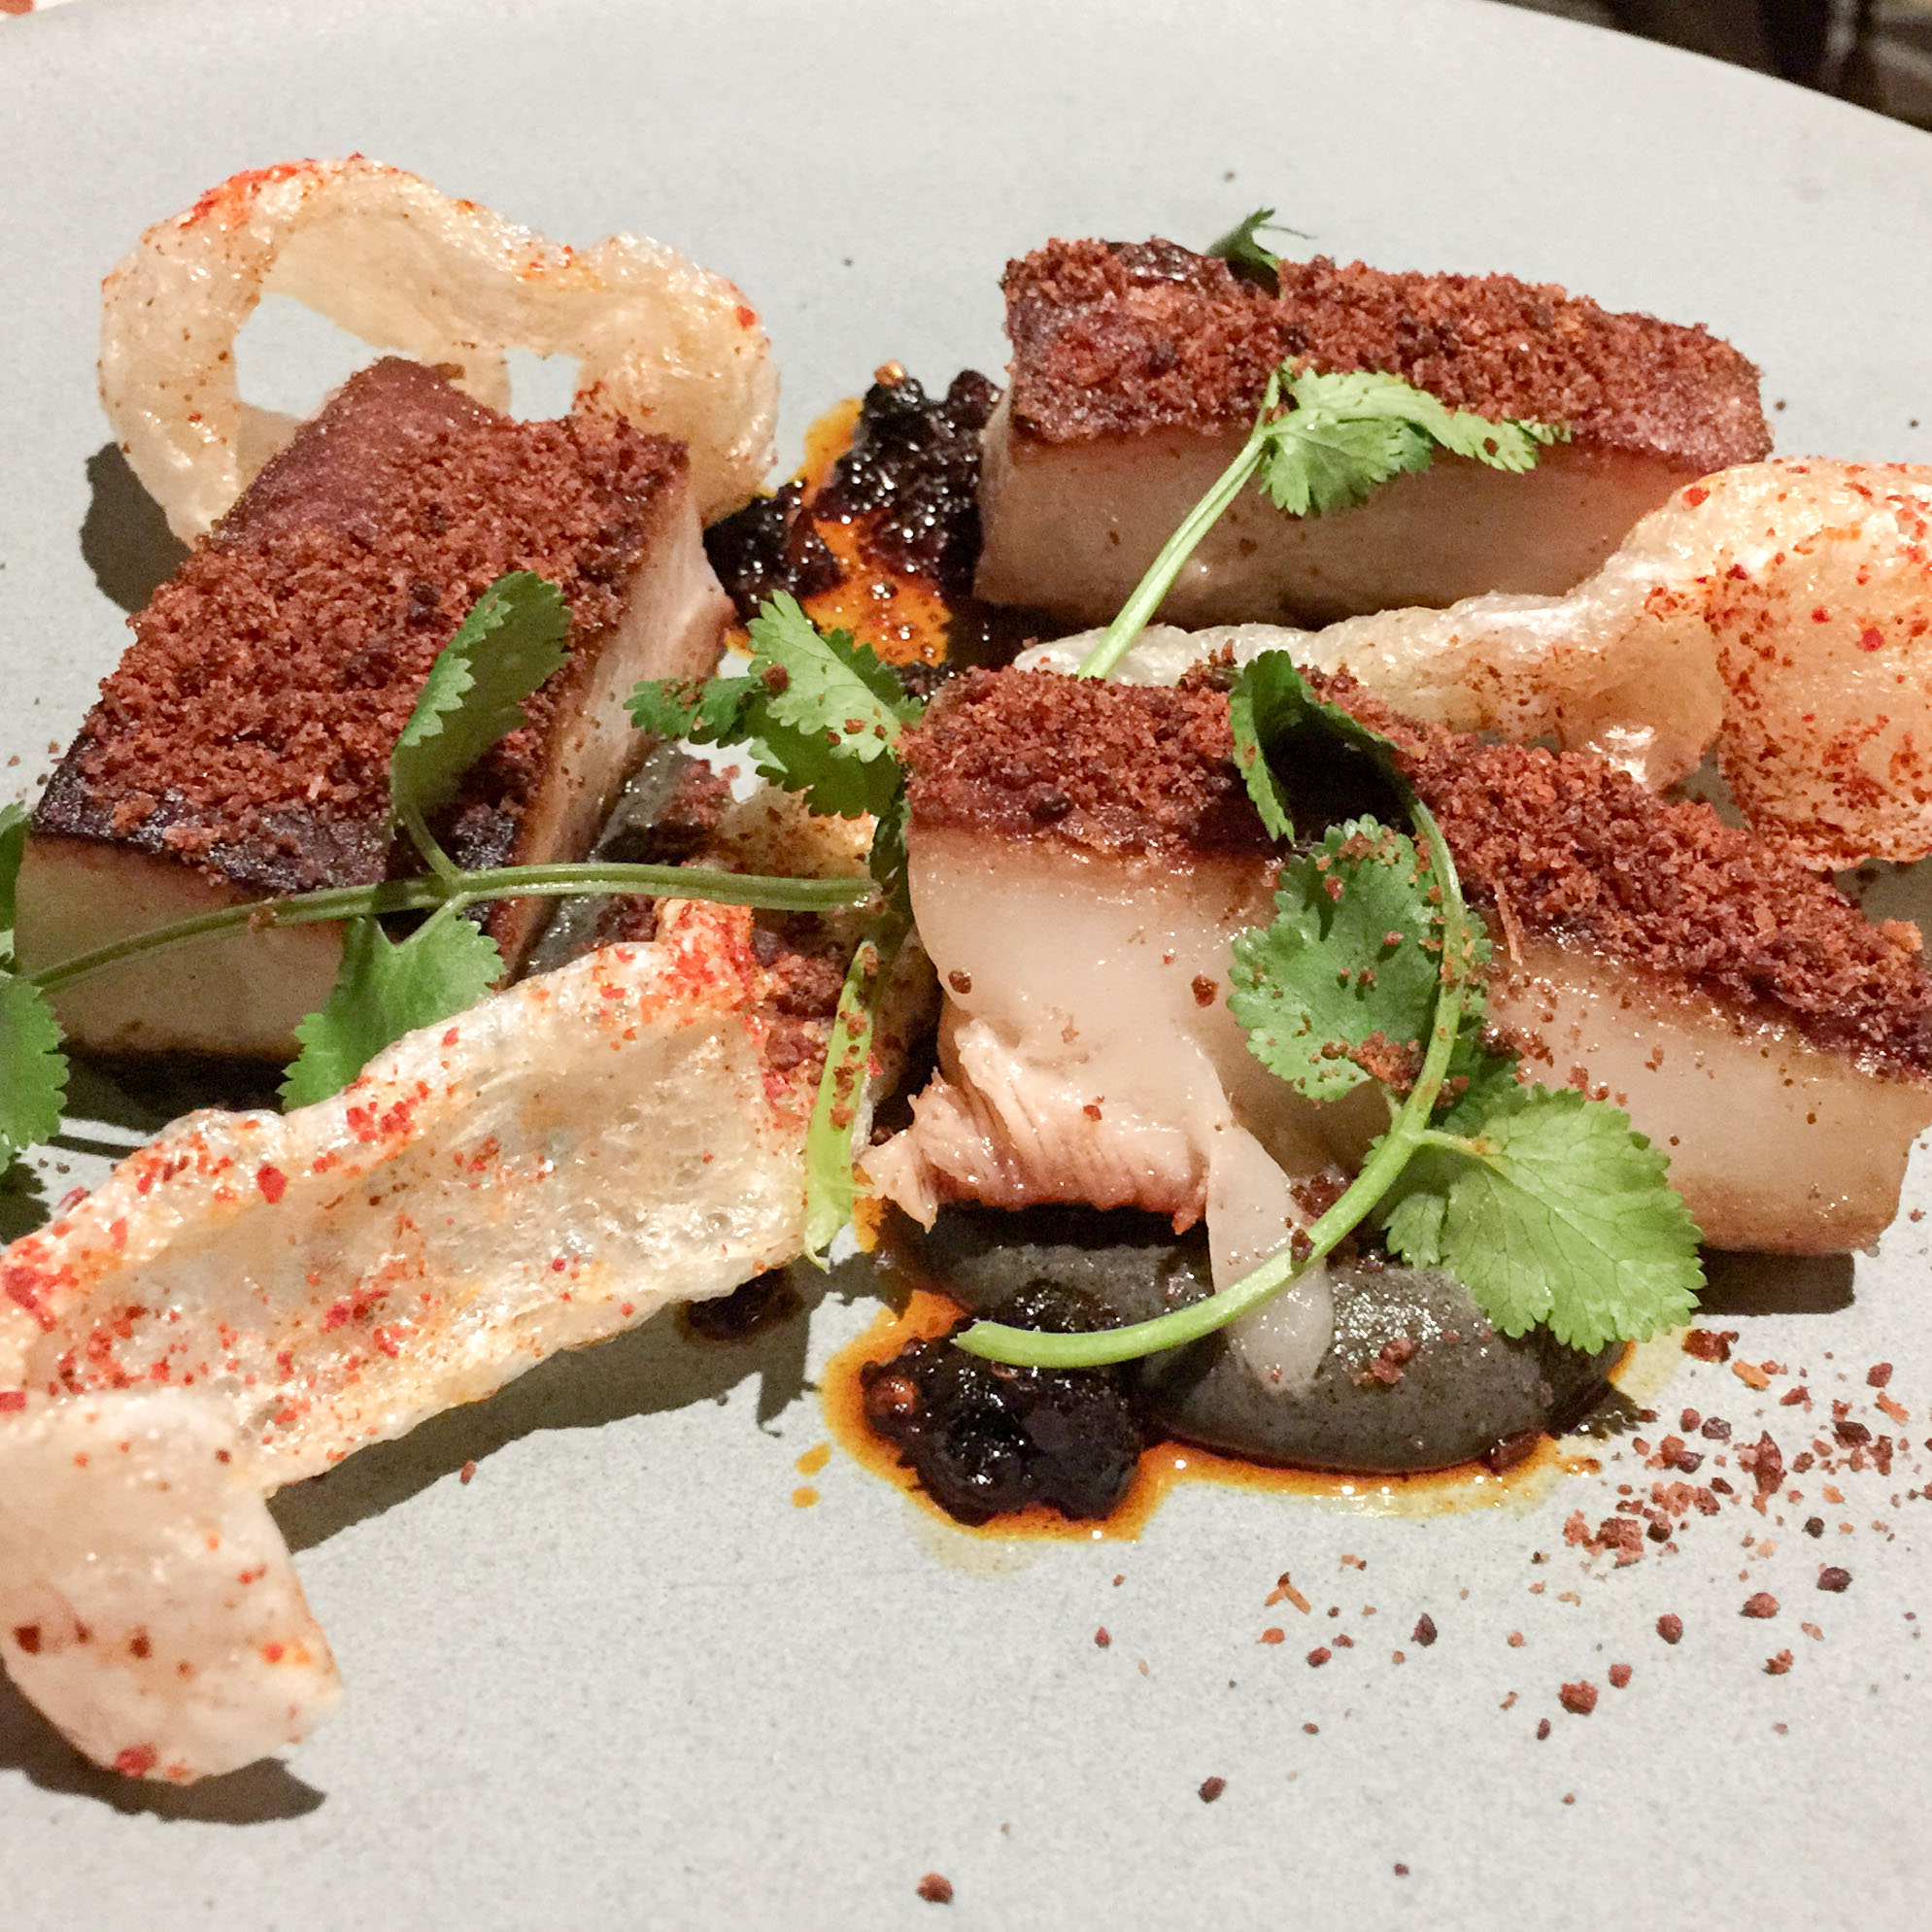 Twice cooked pigs cheek, pigs cheek, burnt eggplant, hoi sin, scallop floss, Sichuan vinaigrette vinaigrette